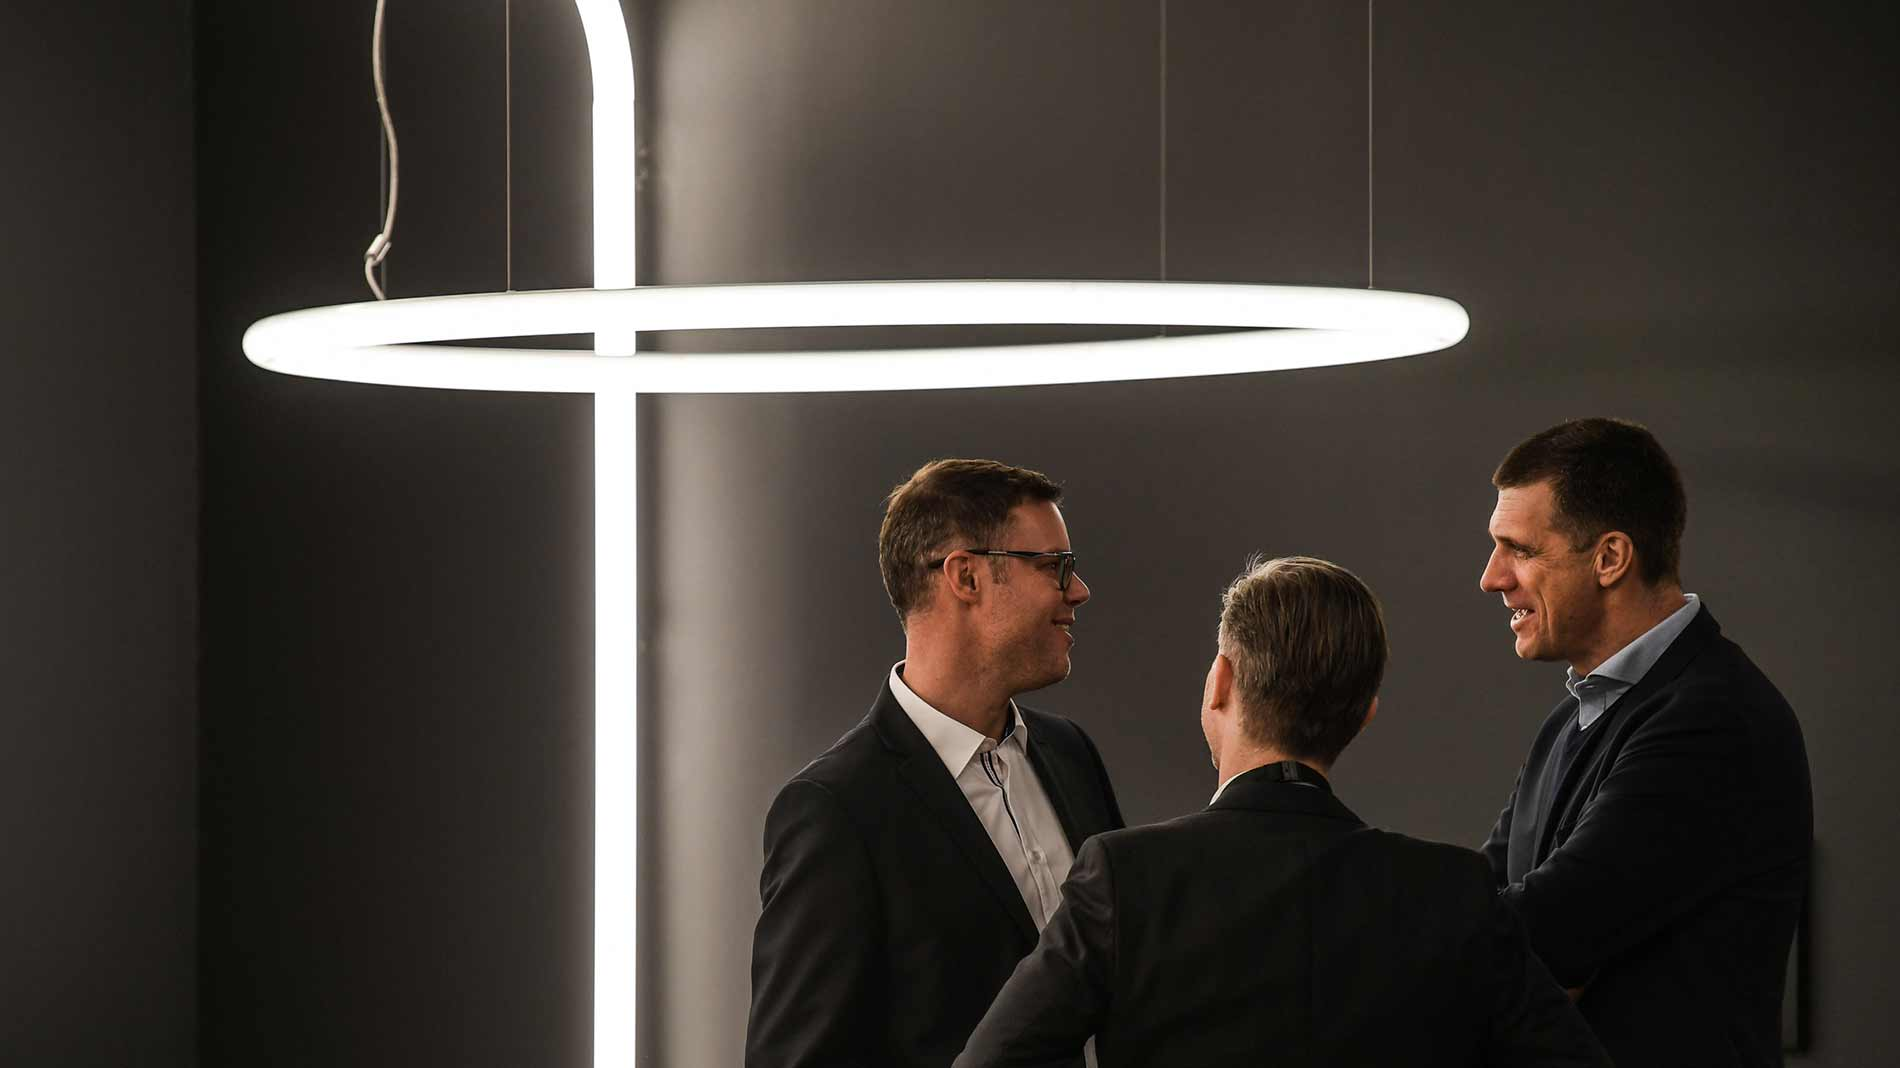 Luminaires that recede into the visual background in order to give prominence to the light itself are a part of the 'Functional Aesthetics' theme at Light + Building 2020 in Frankfurt am Main. (Source: Messe Frankfurt / Pietro Sutera)